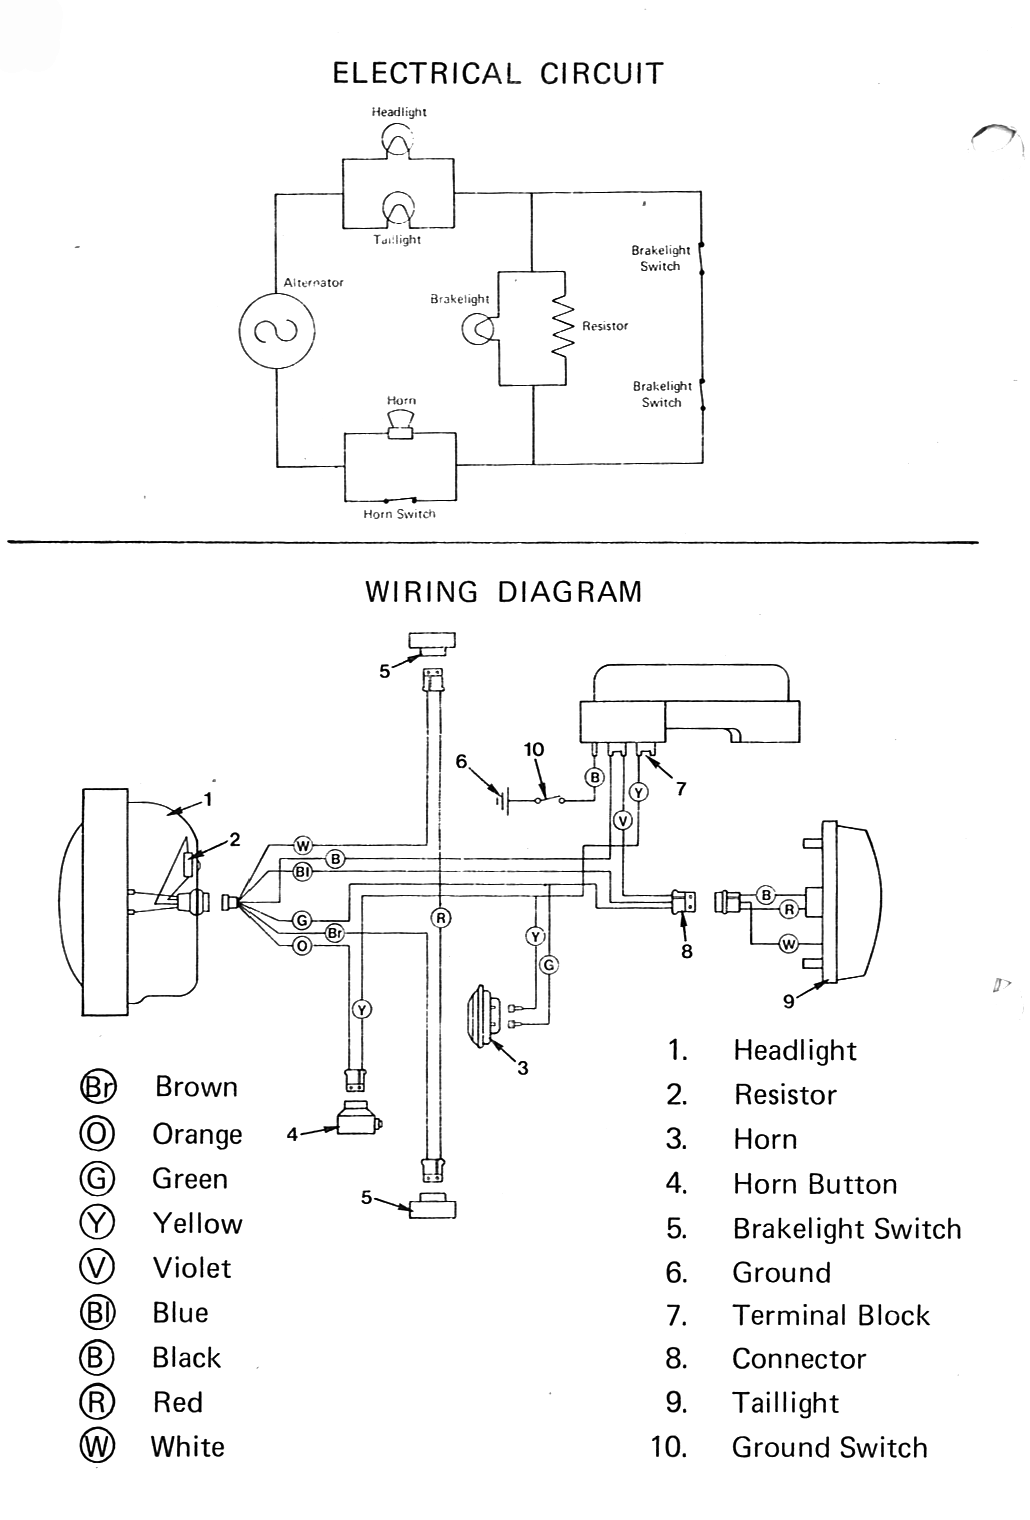 list of wiring diagrams moped wiki rh mopedarmy com 150Cc Scooter Wiring Diagram Universal Ignition Switch Wiring Diagram